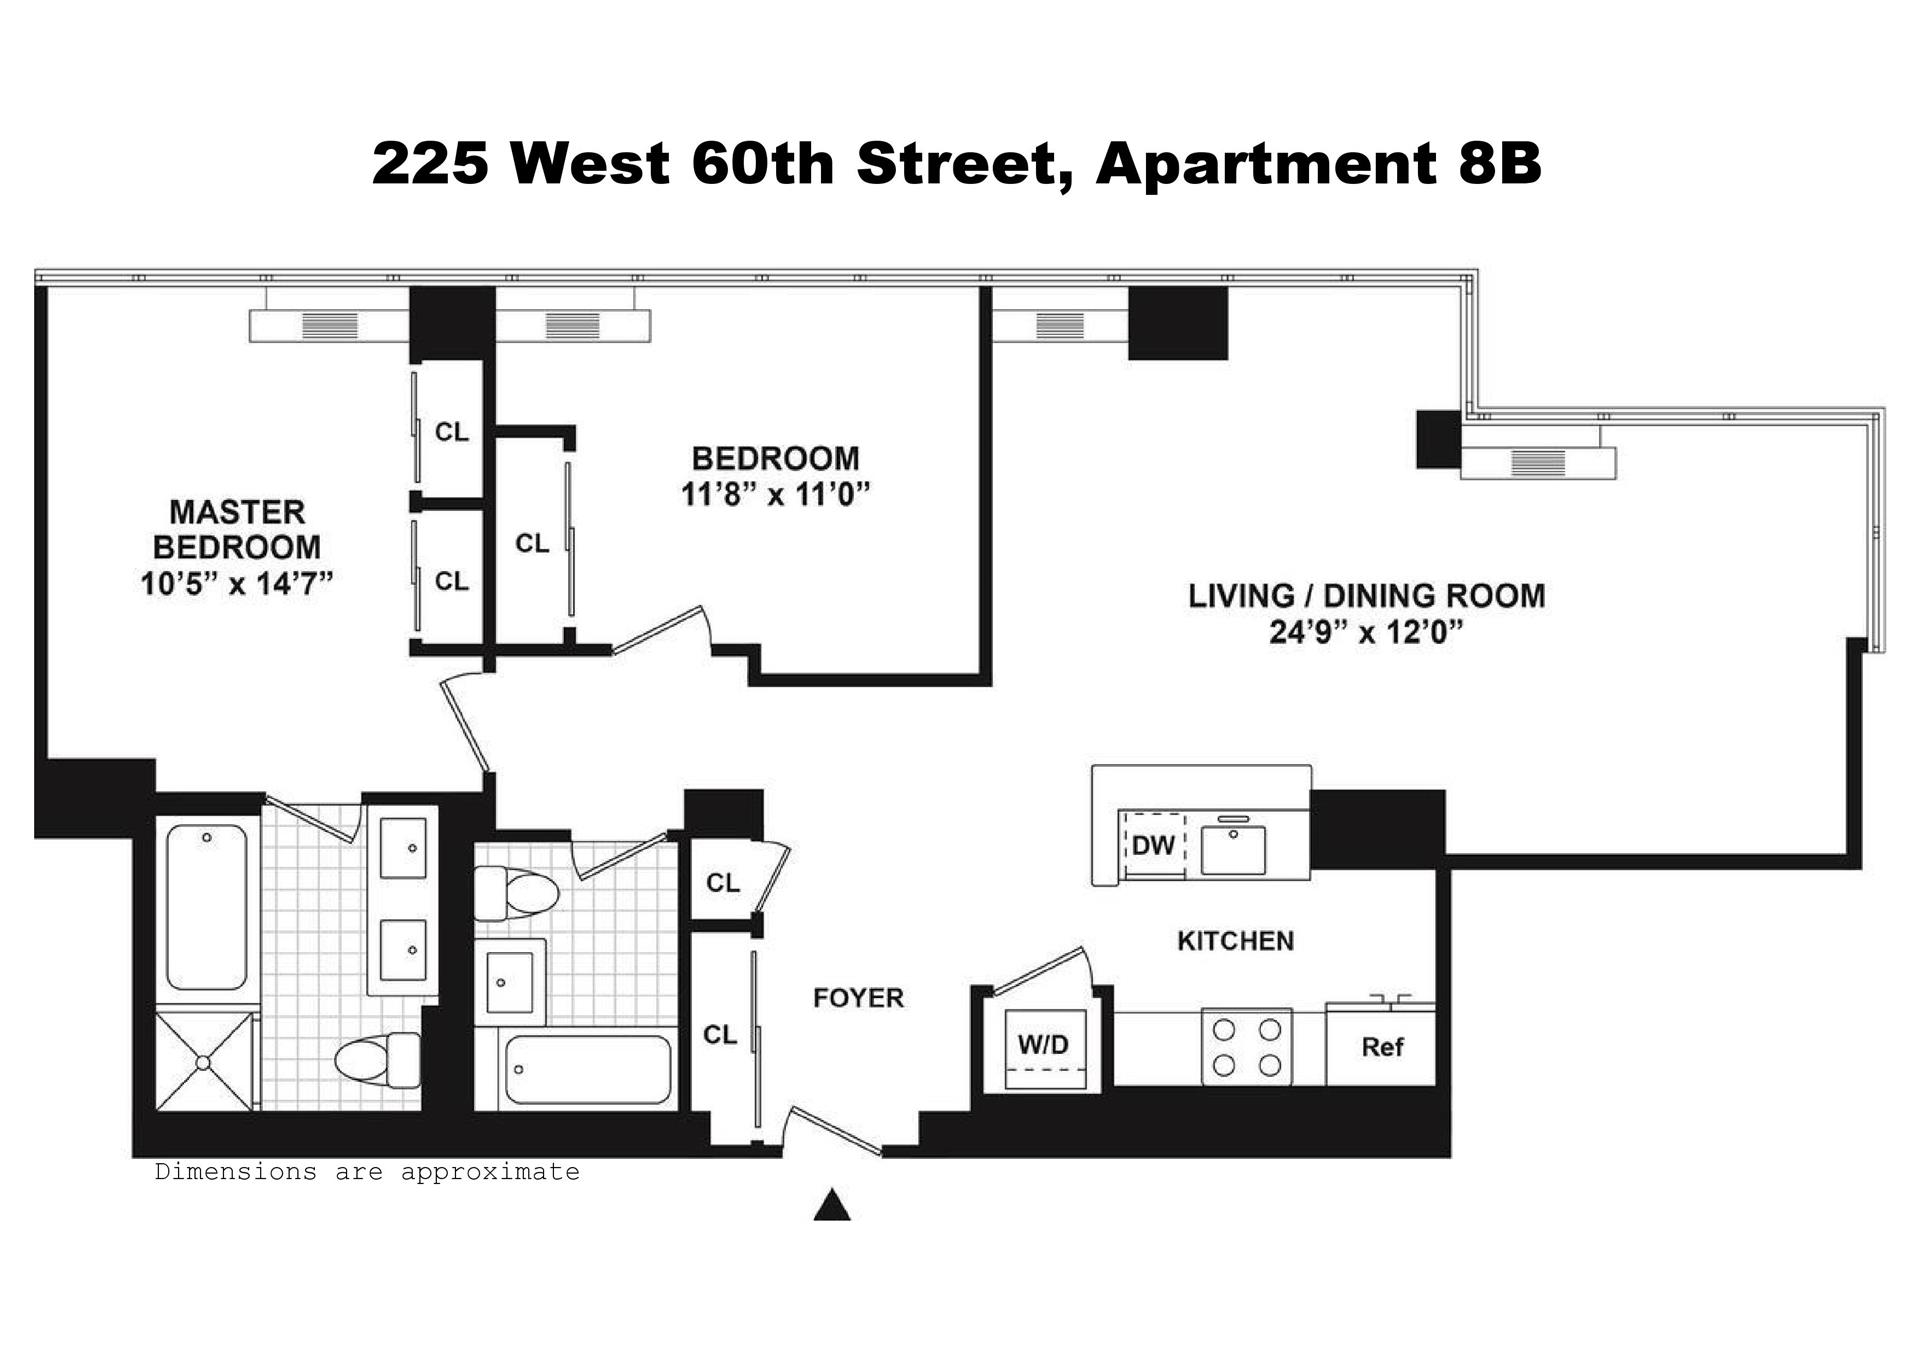 Floor plan of THE HUDSON, 225 West 60th St, 8B - Lincoln Square, New York